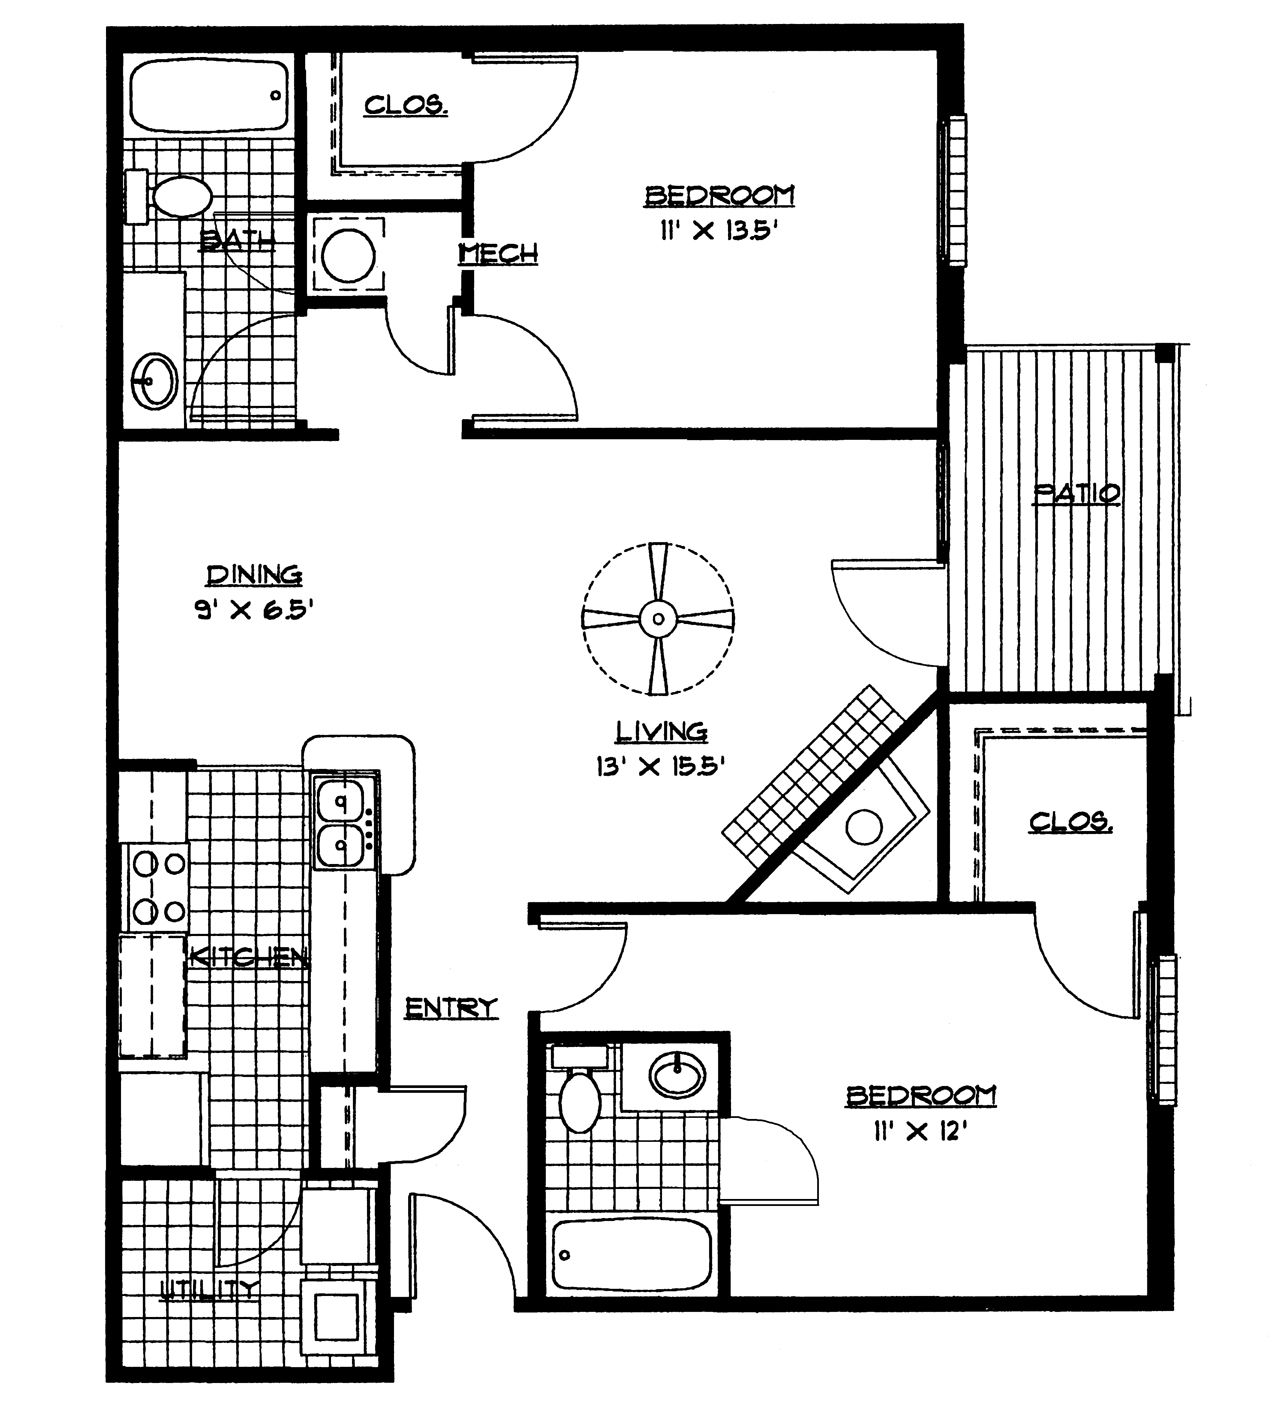 Small house floor plans 2 bedrooms bedroom floor plan download printable pdf tiny houses Free house layouts floor plans